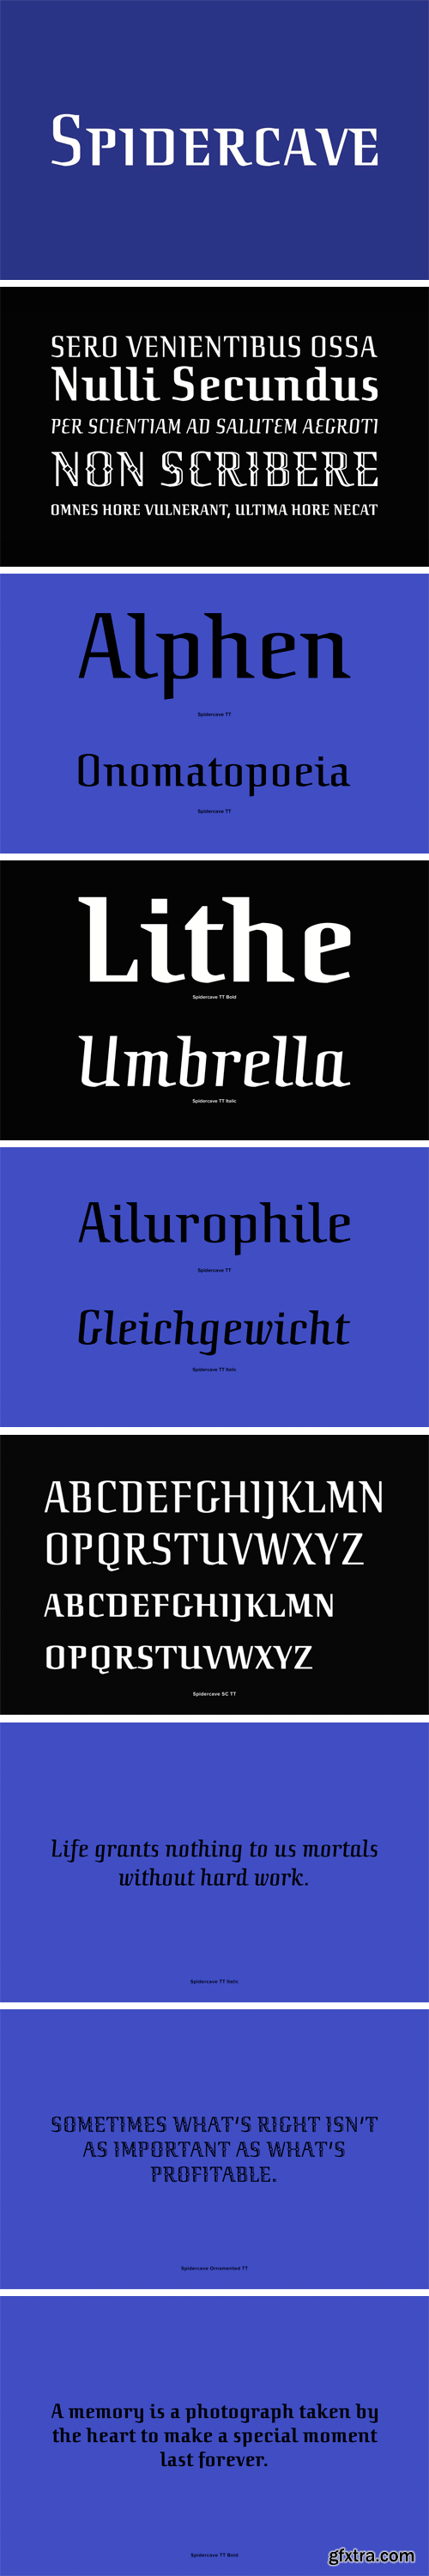 Spidercave Font Family